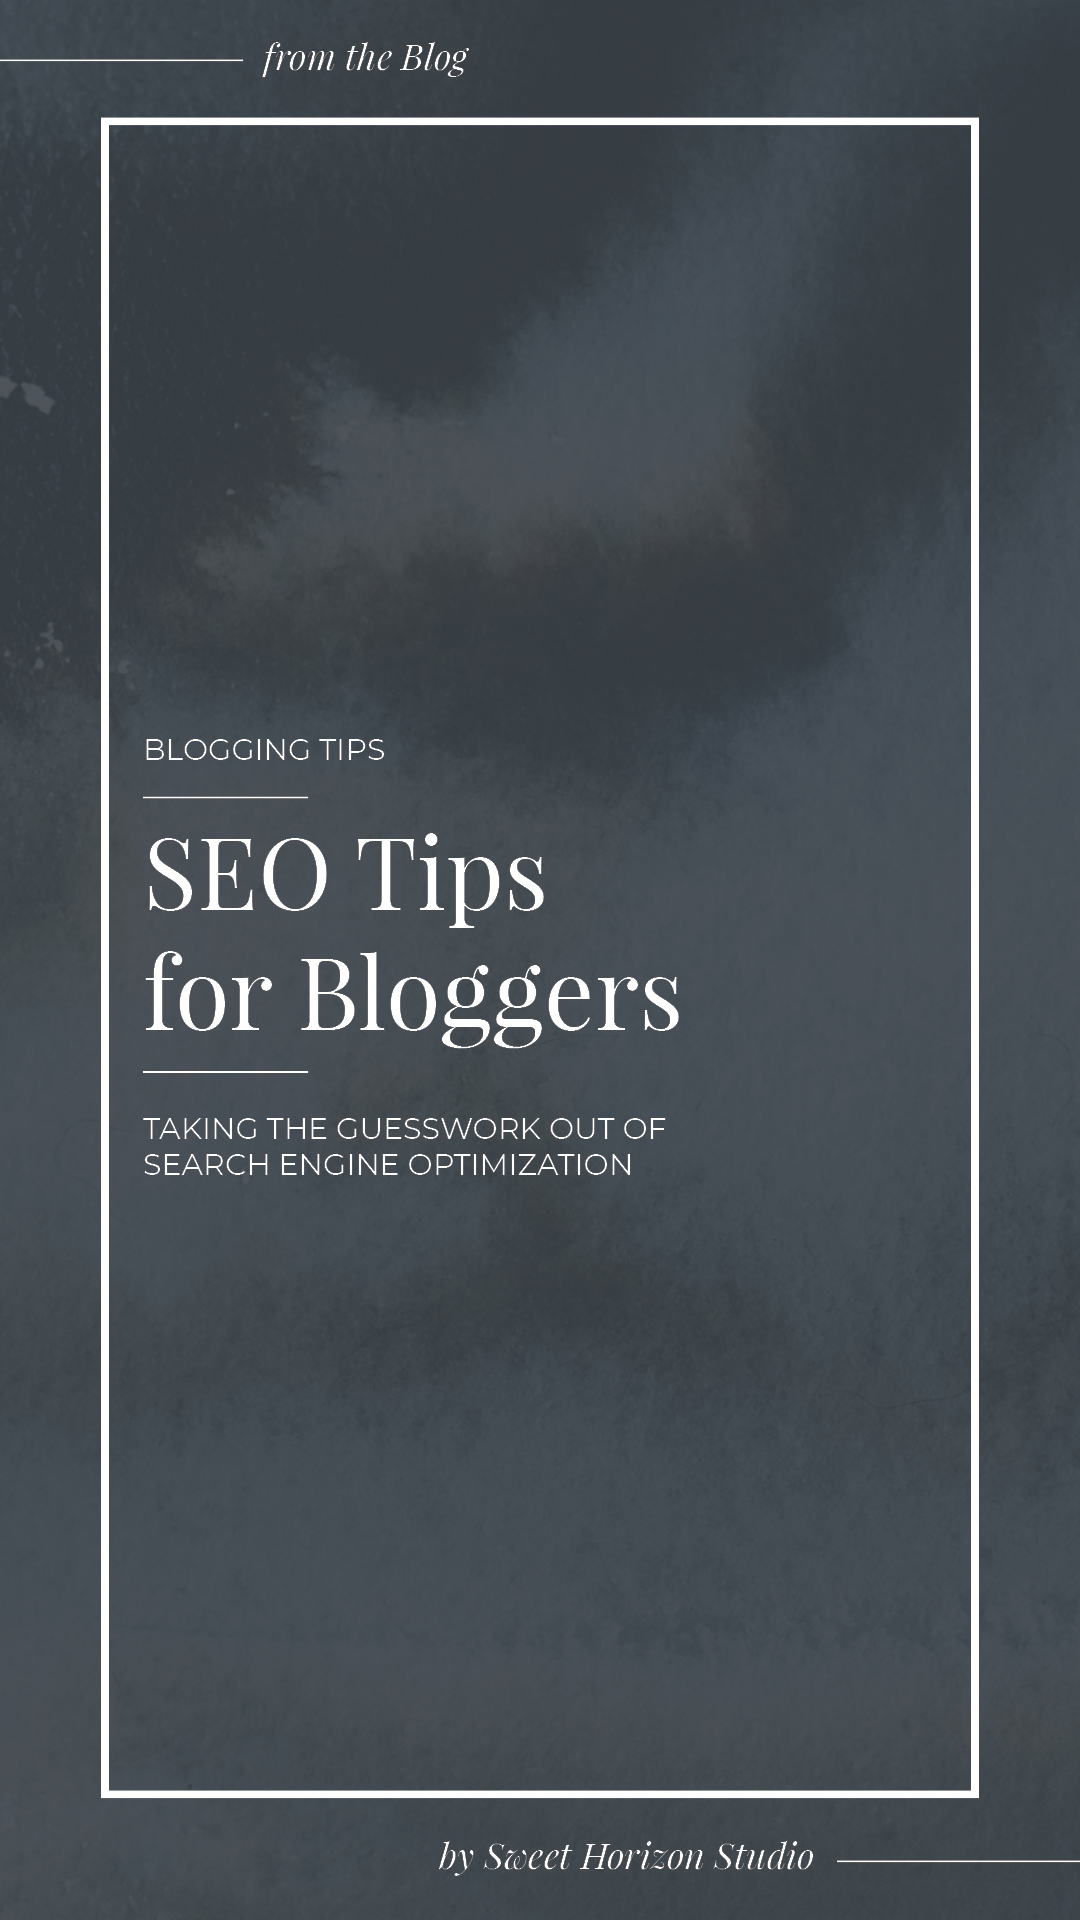 SEO Tips for Bloggers from www.sweethorizonblog.com